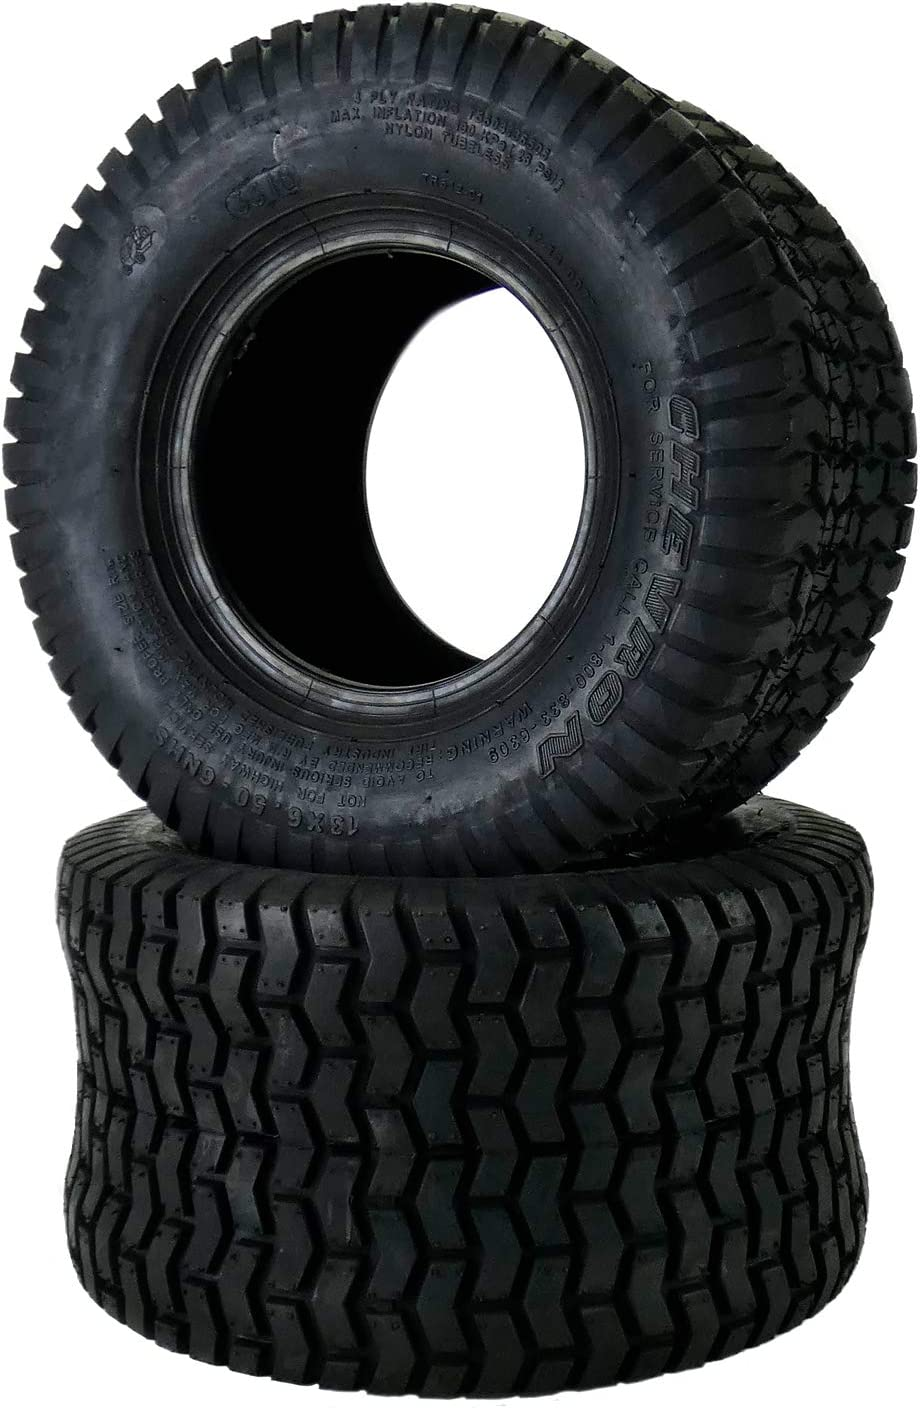 Deestone Two 13x6.50-6 Turf Lawn Tire Set of Two